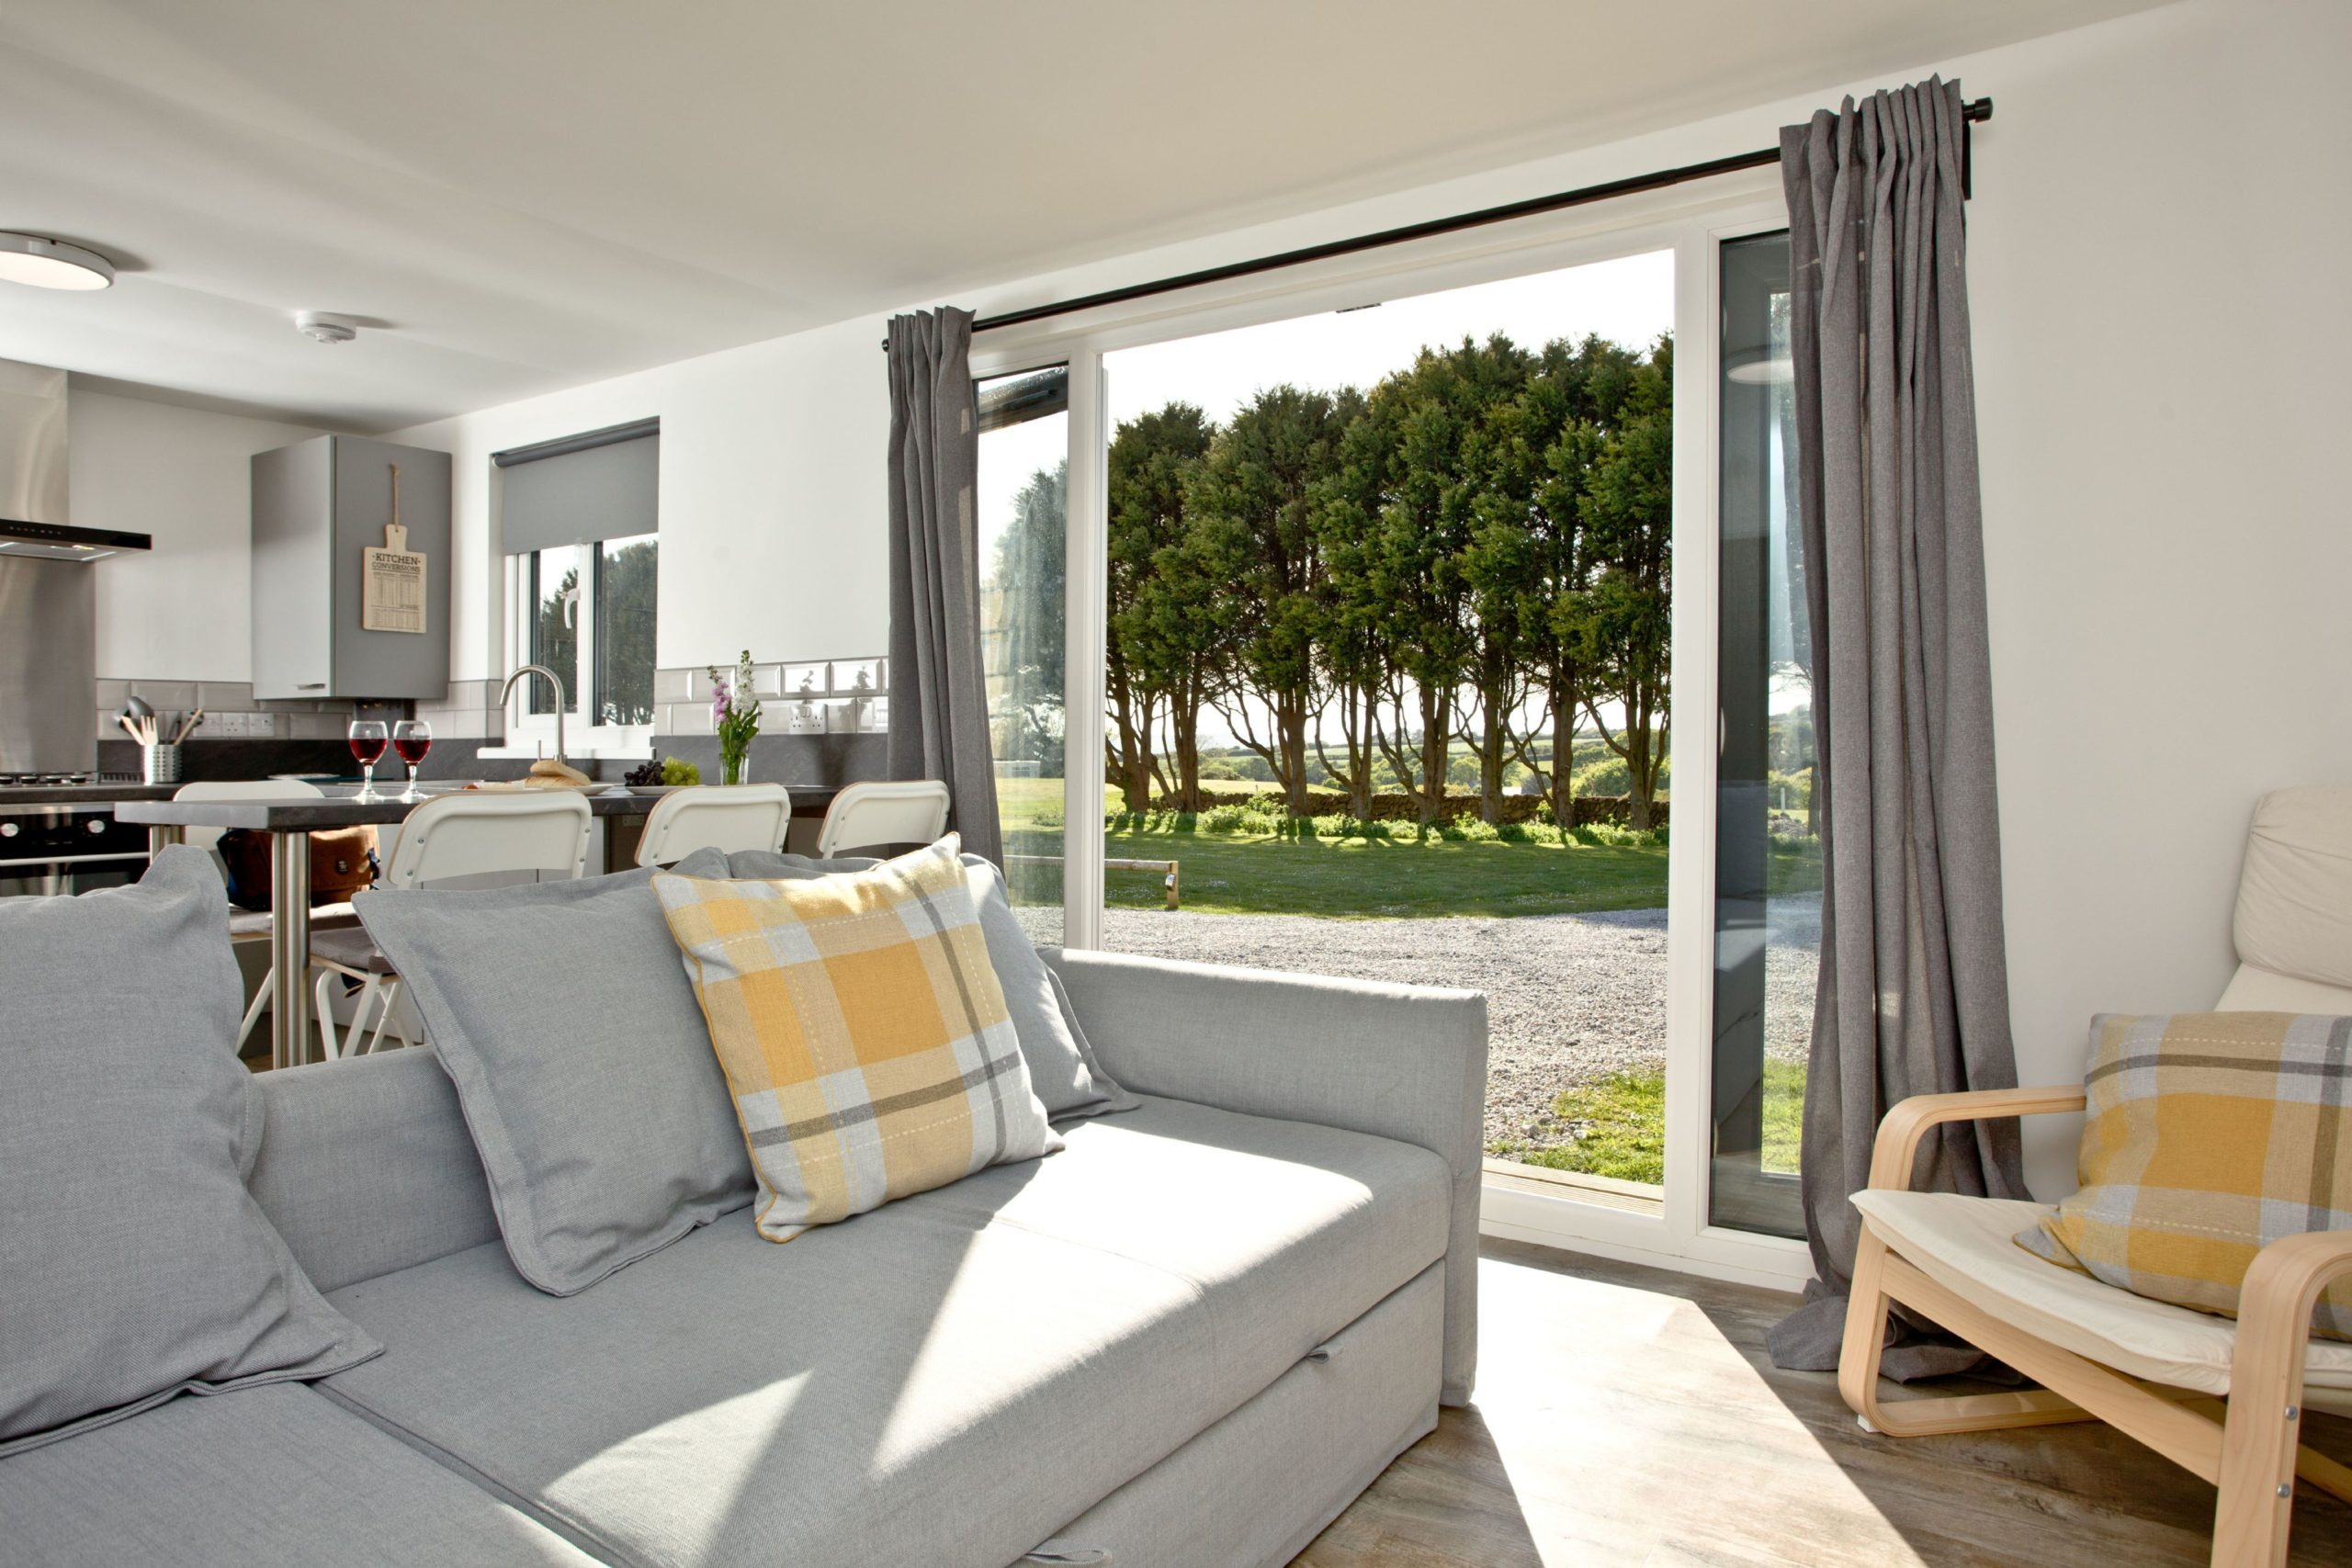 Stylish retreats for couples and families